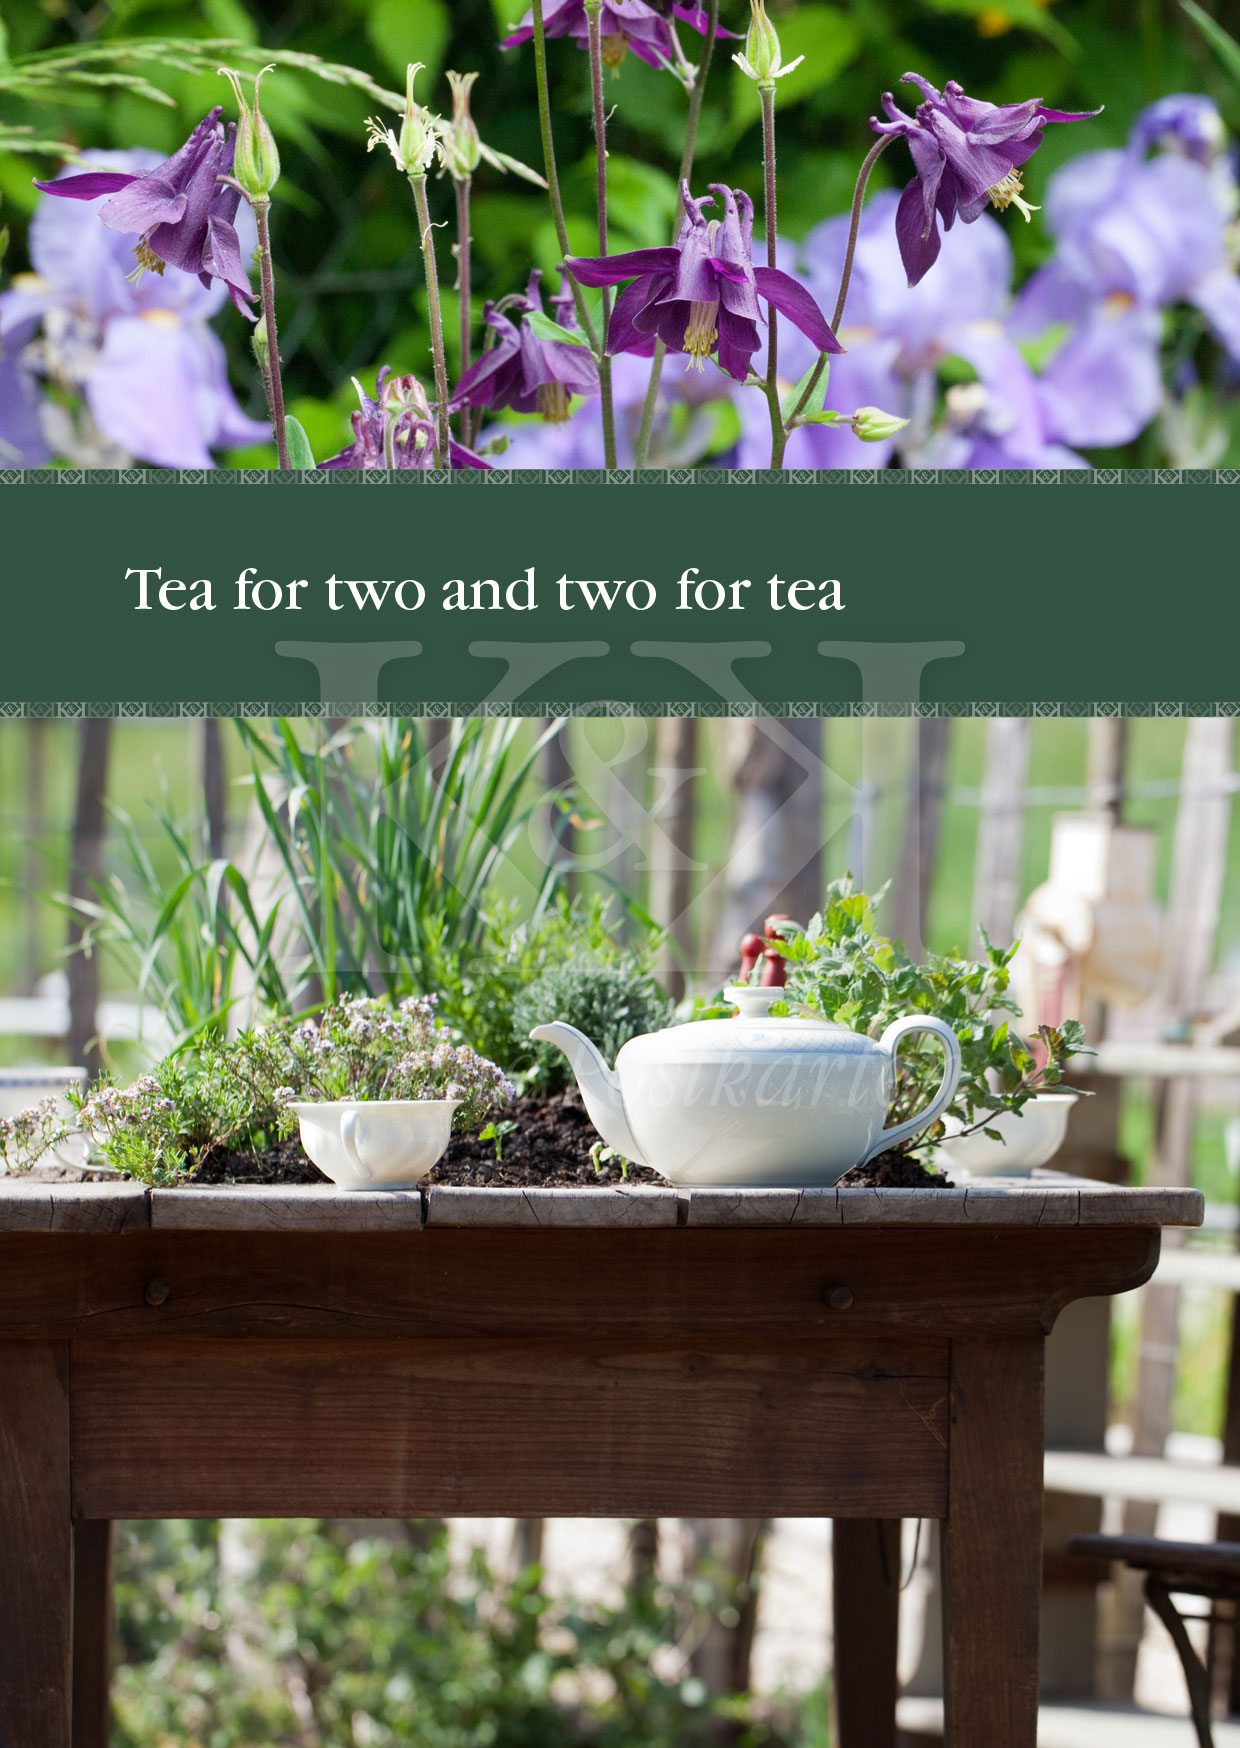 Schöne Postkarte Nr. 11 · Tea for two and two for tea · © 2017